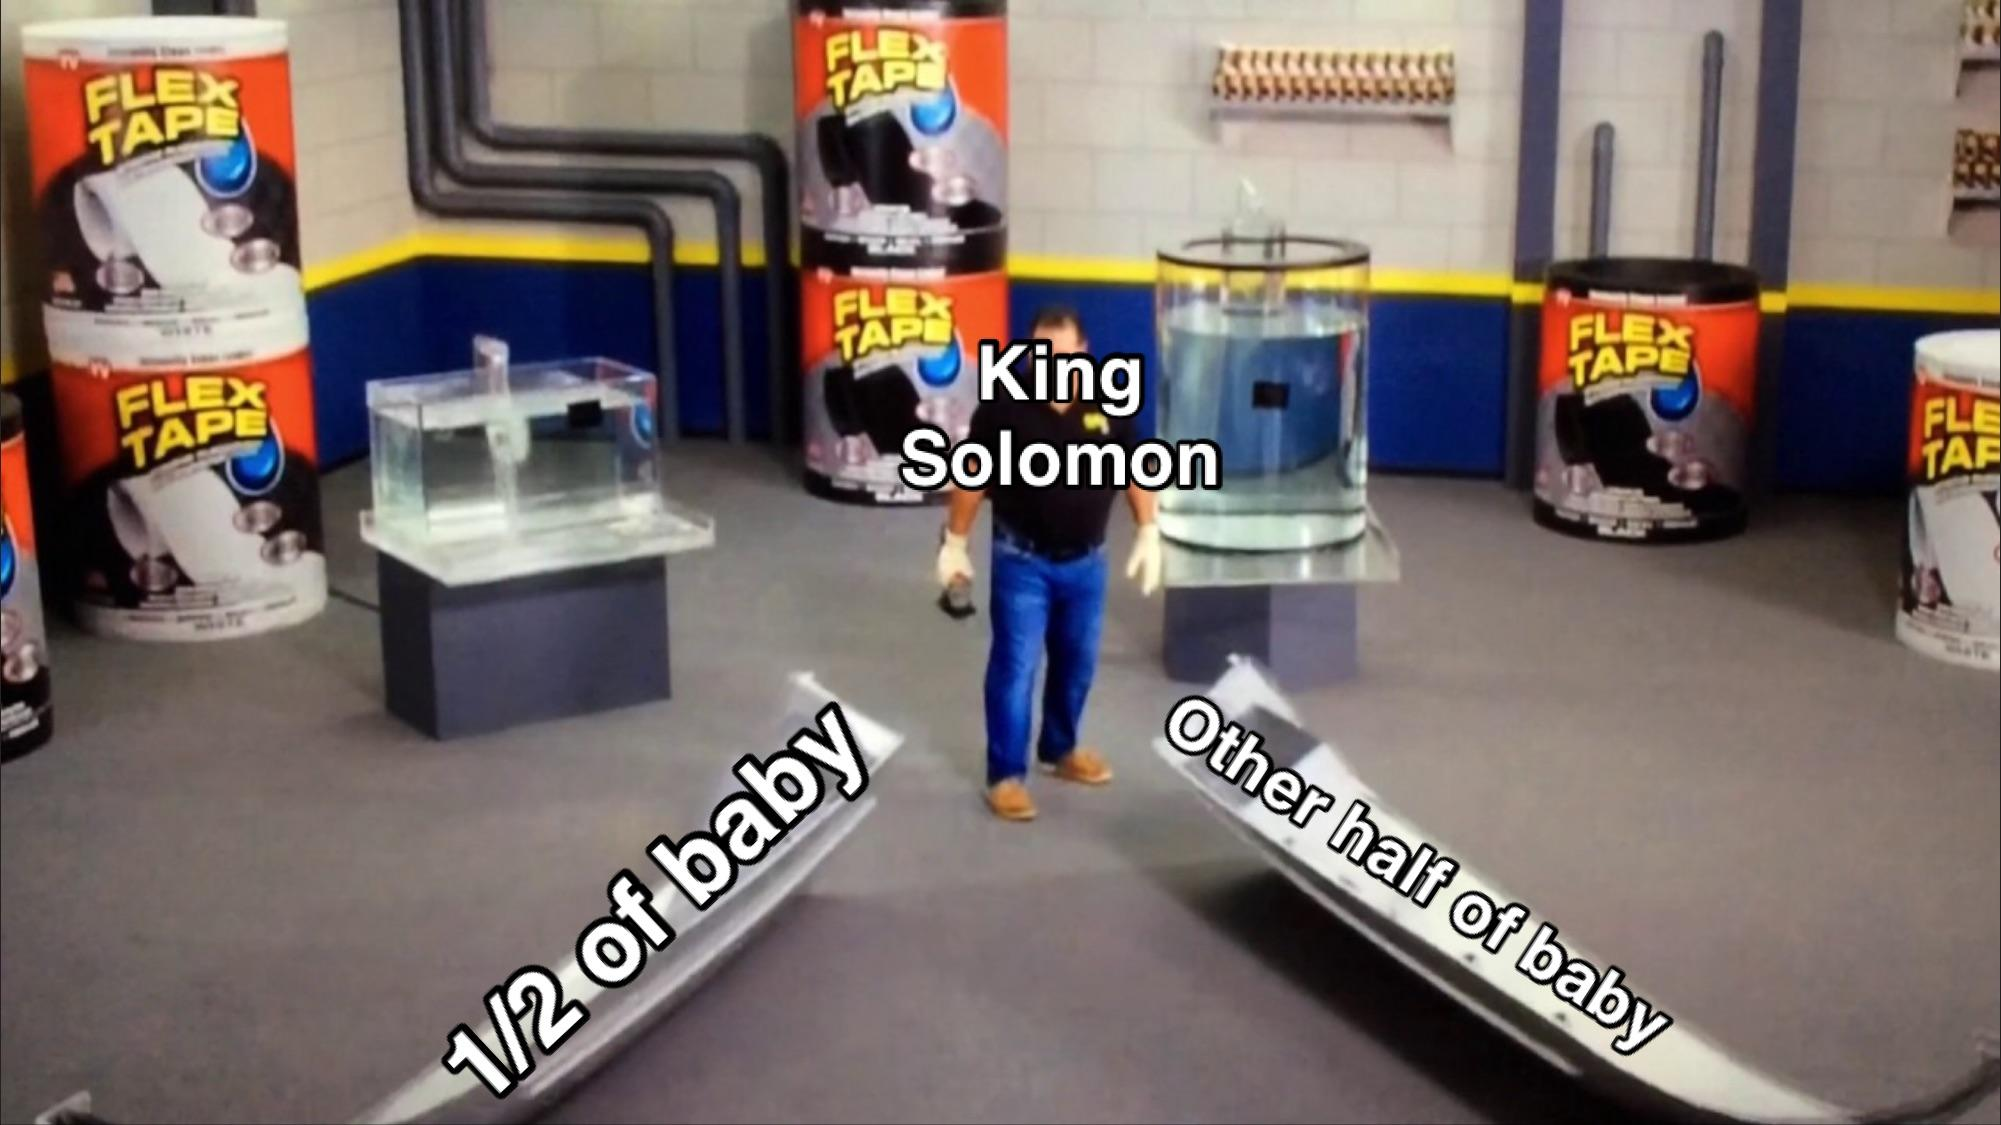 I Don T Have Any Flex Tape To Fix It Tho Memes